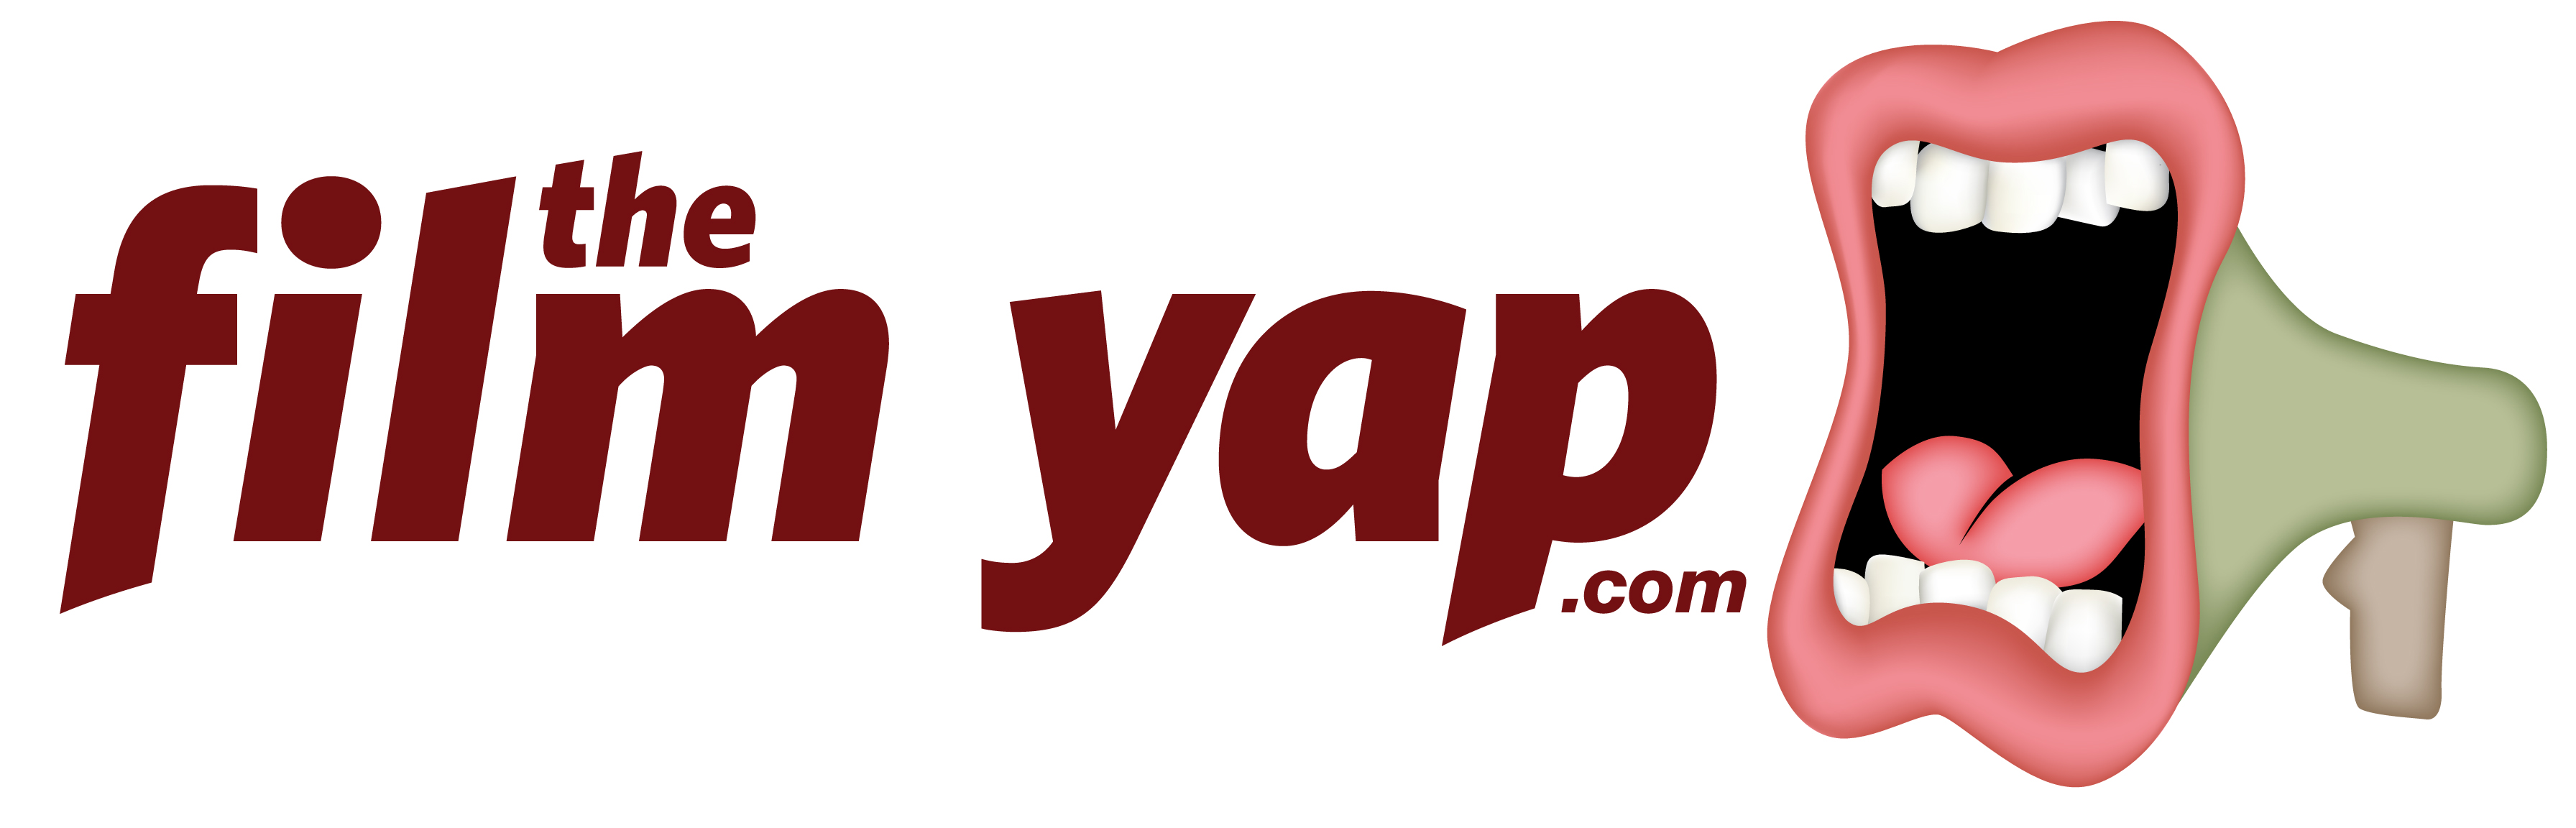 filmyap_logo_red_text